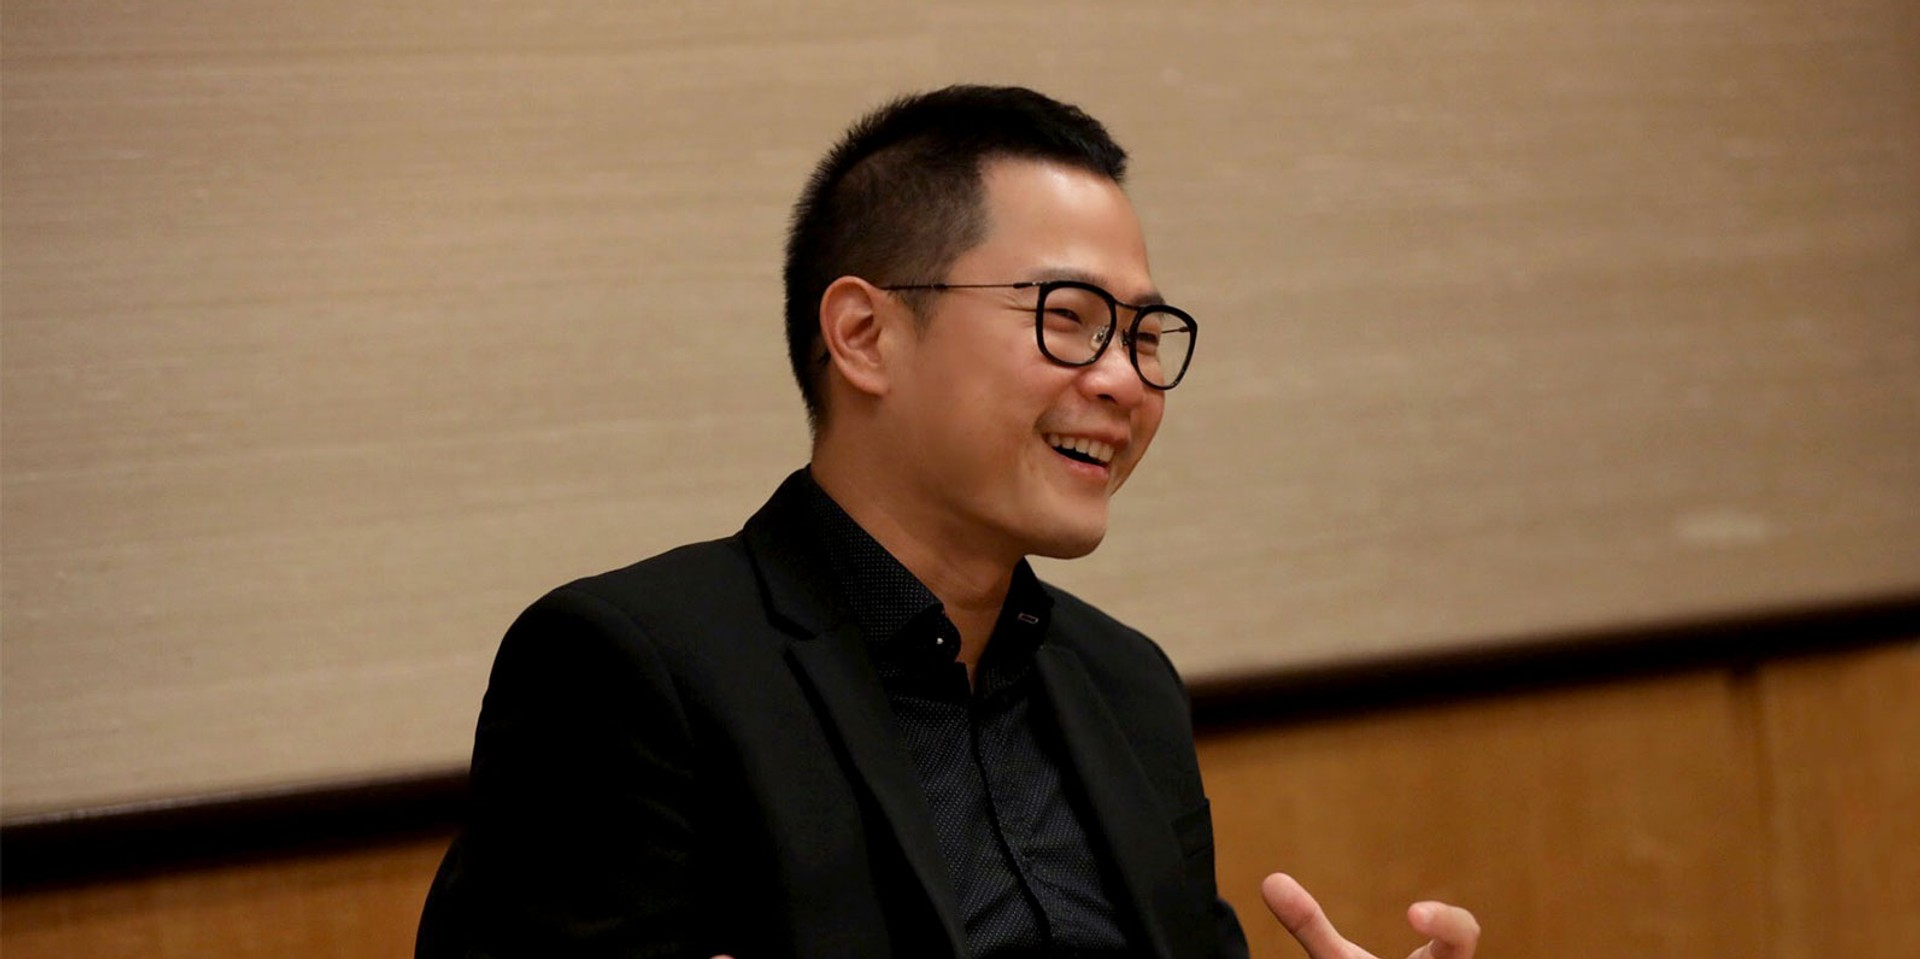 """""""We are trying to fulfil our vision of having music available anytime, anywhere"""": An interview with Dennis Hau, Group Vice President of Tencent Music Entertainment"""